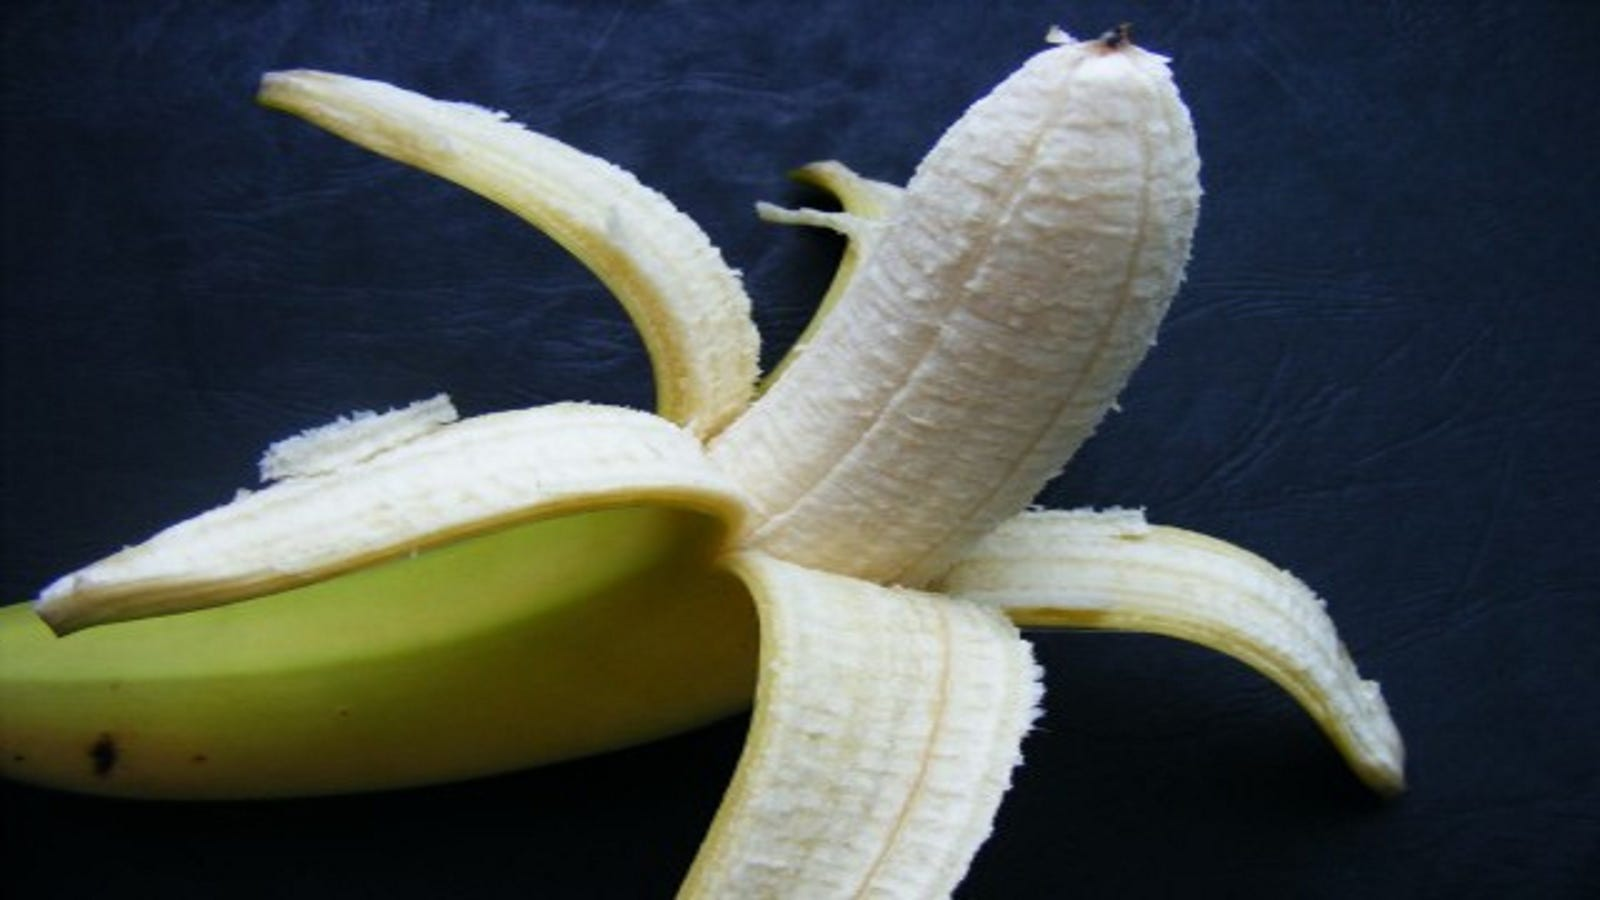 Why hippies thought smoking banana peels could get you high